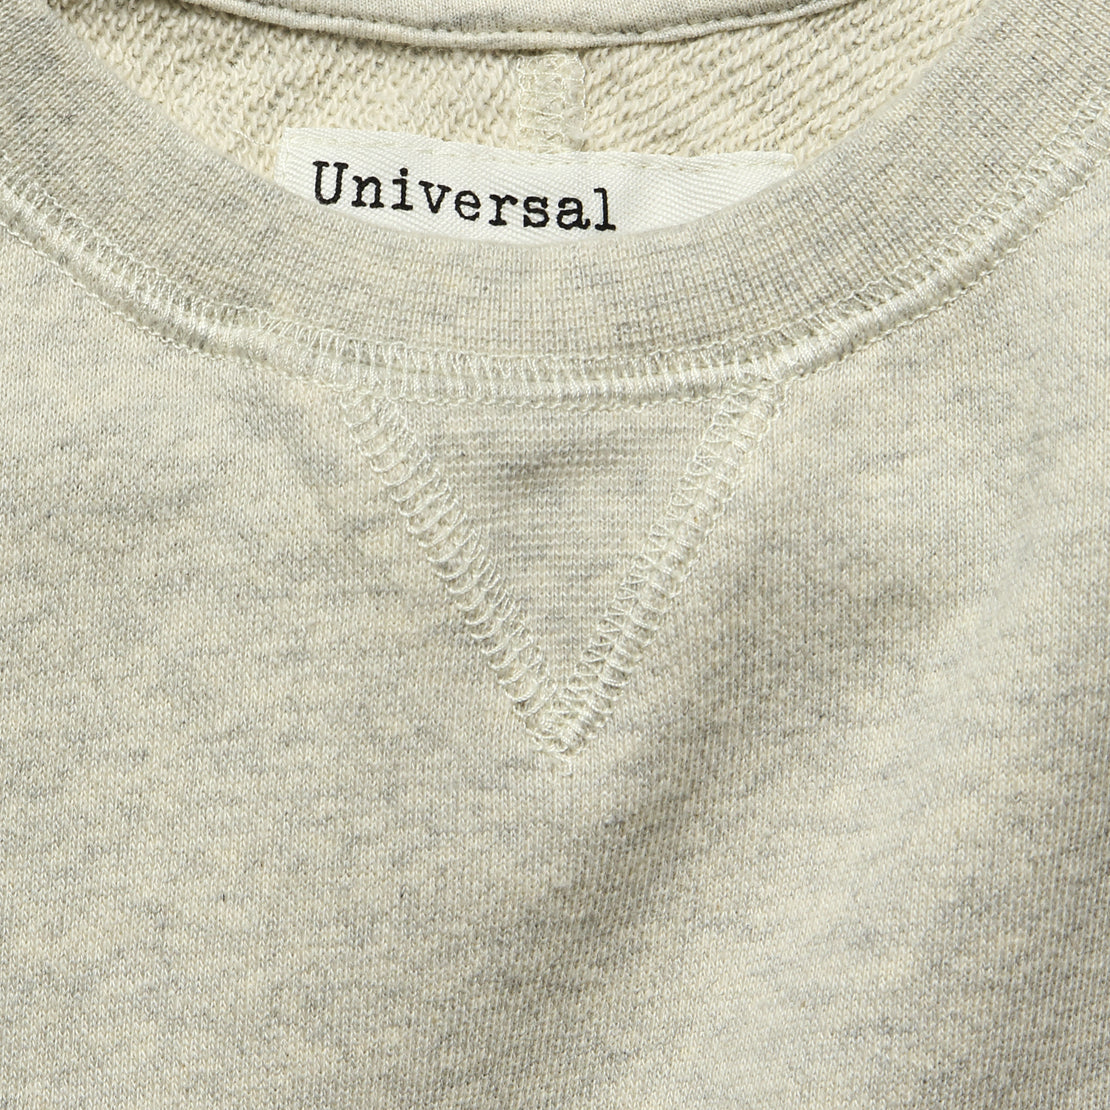 Crew Fleece Sweatshirt - Sand Marl